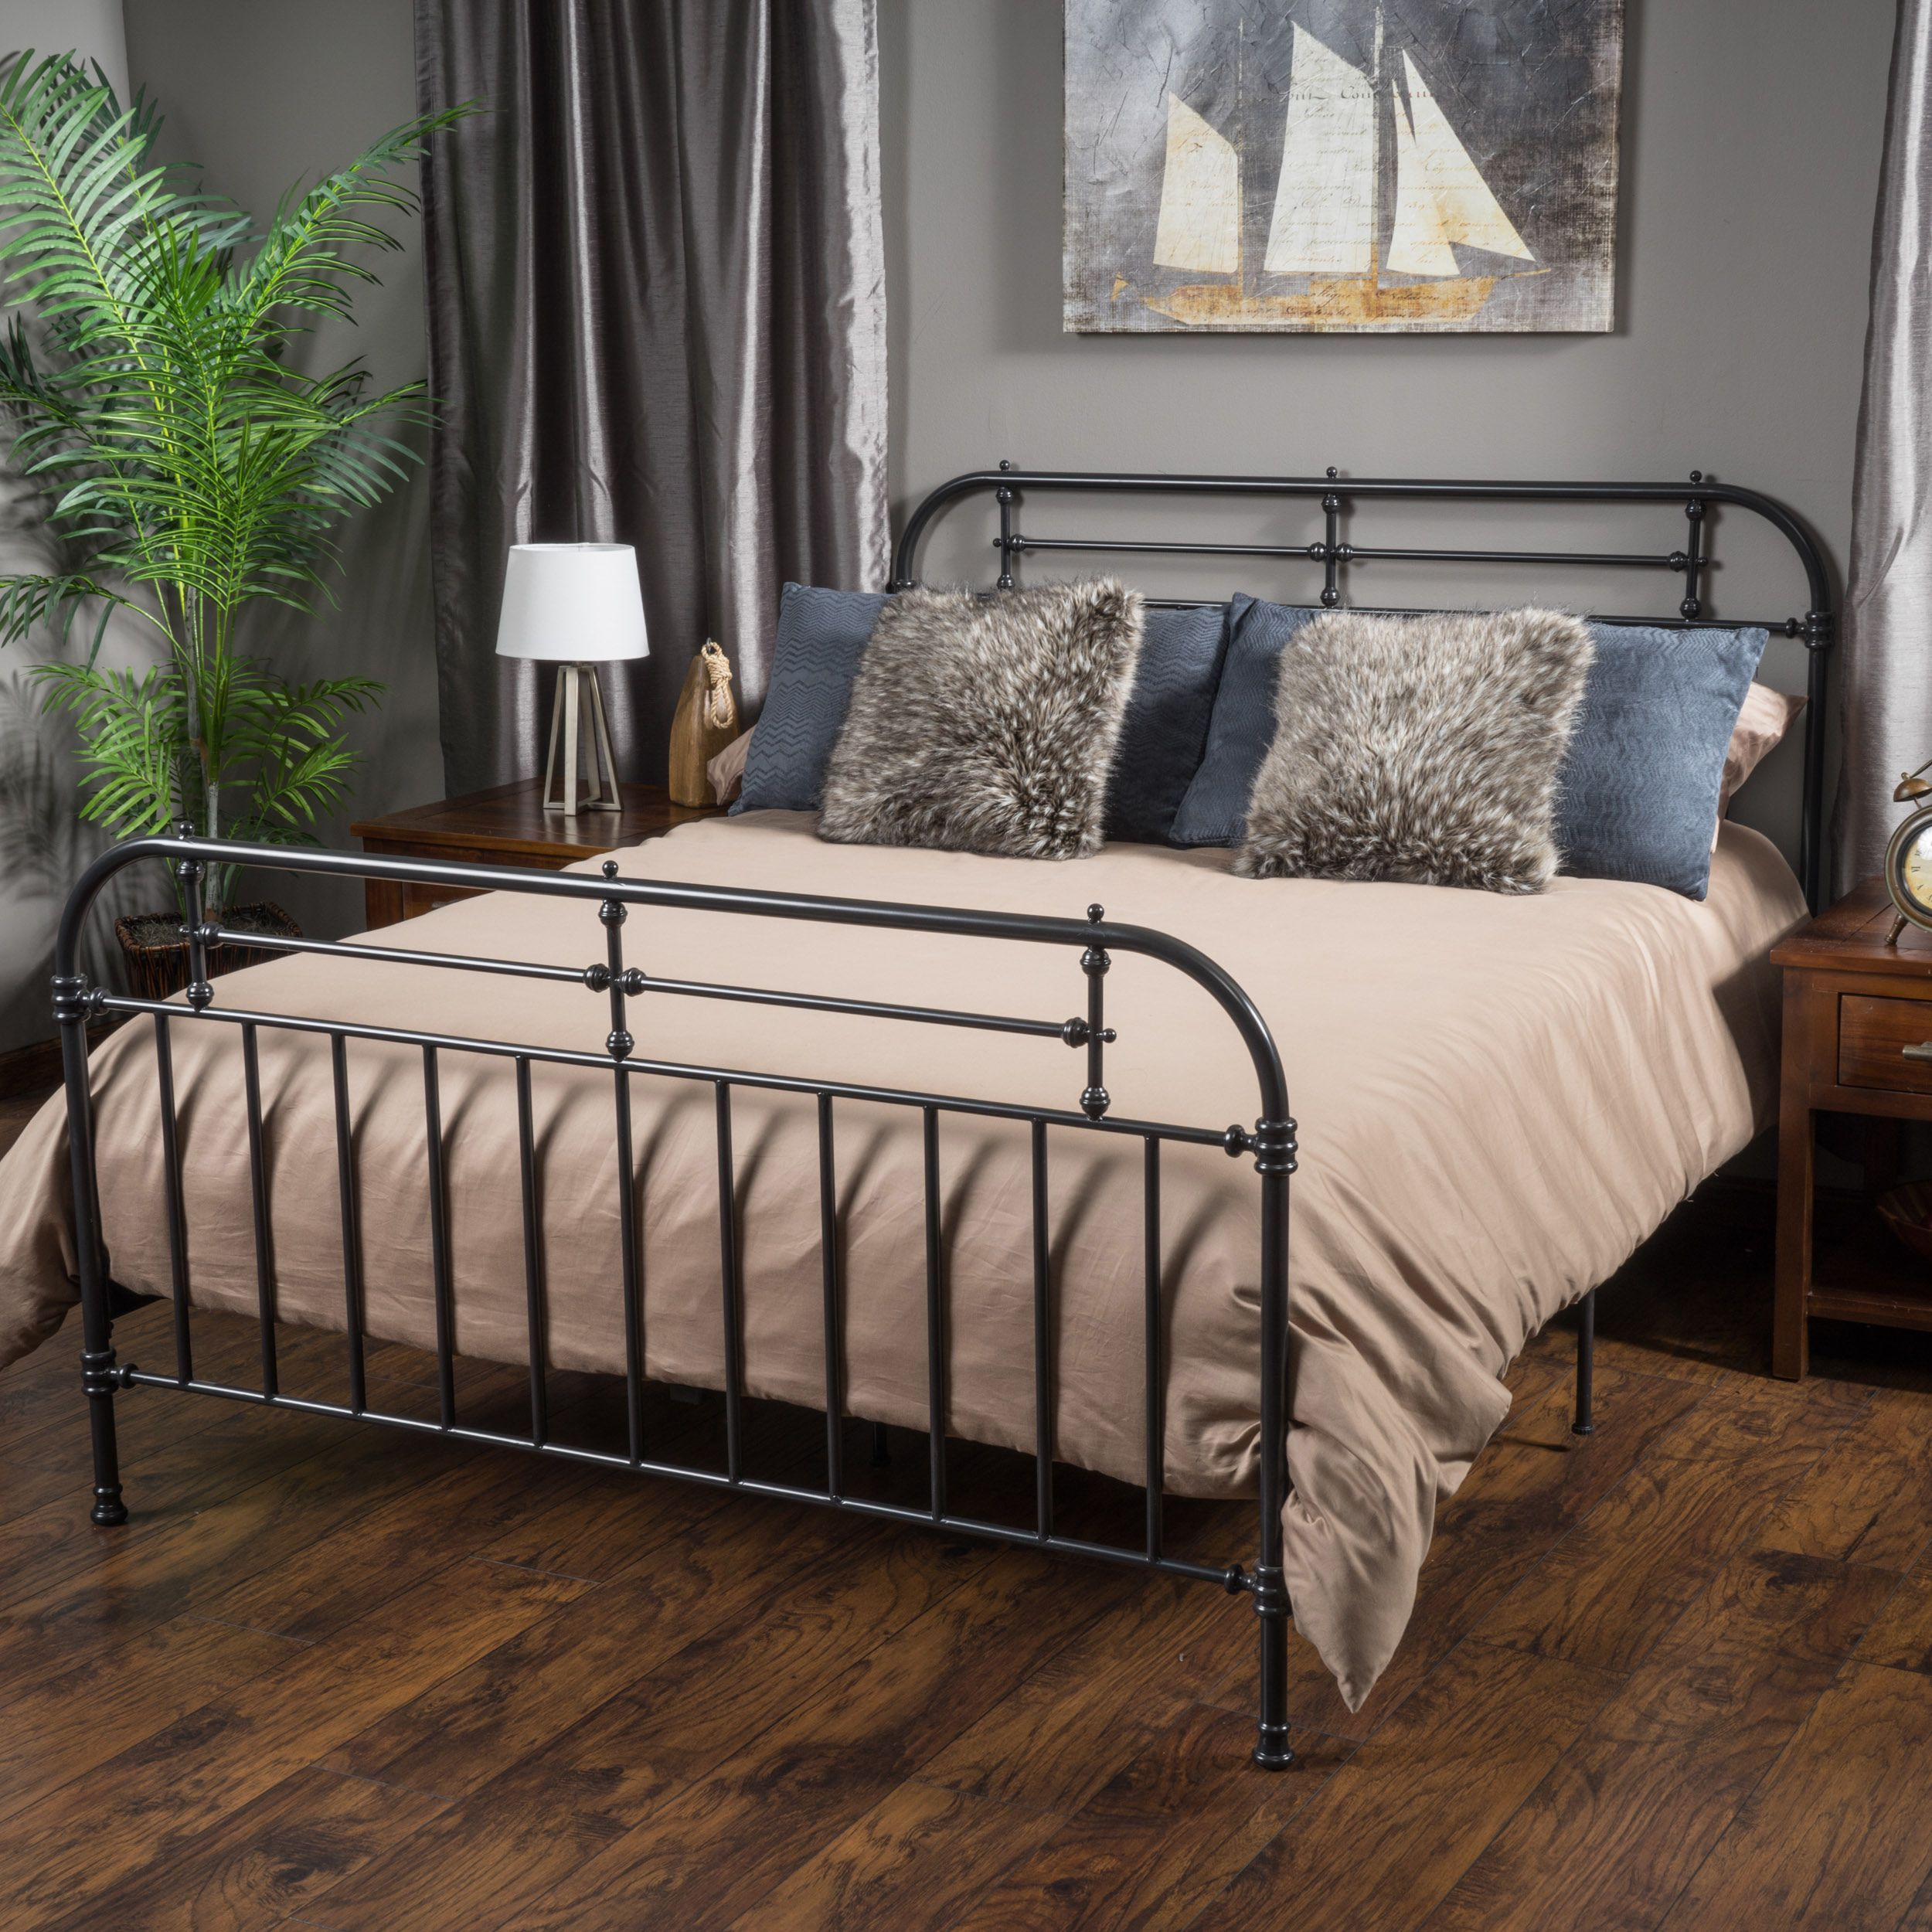 nathan king size metal bed frame by christopher knight home by christopher knight home - Sturdy Bed Frames